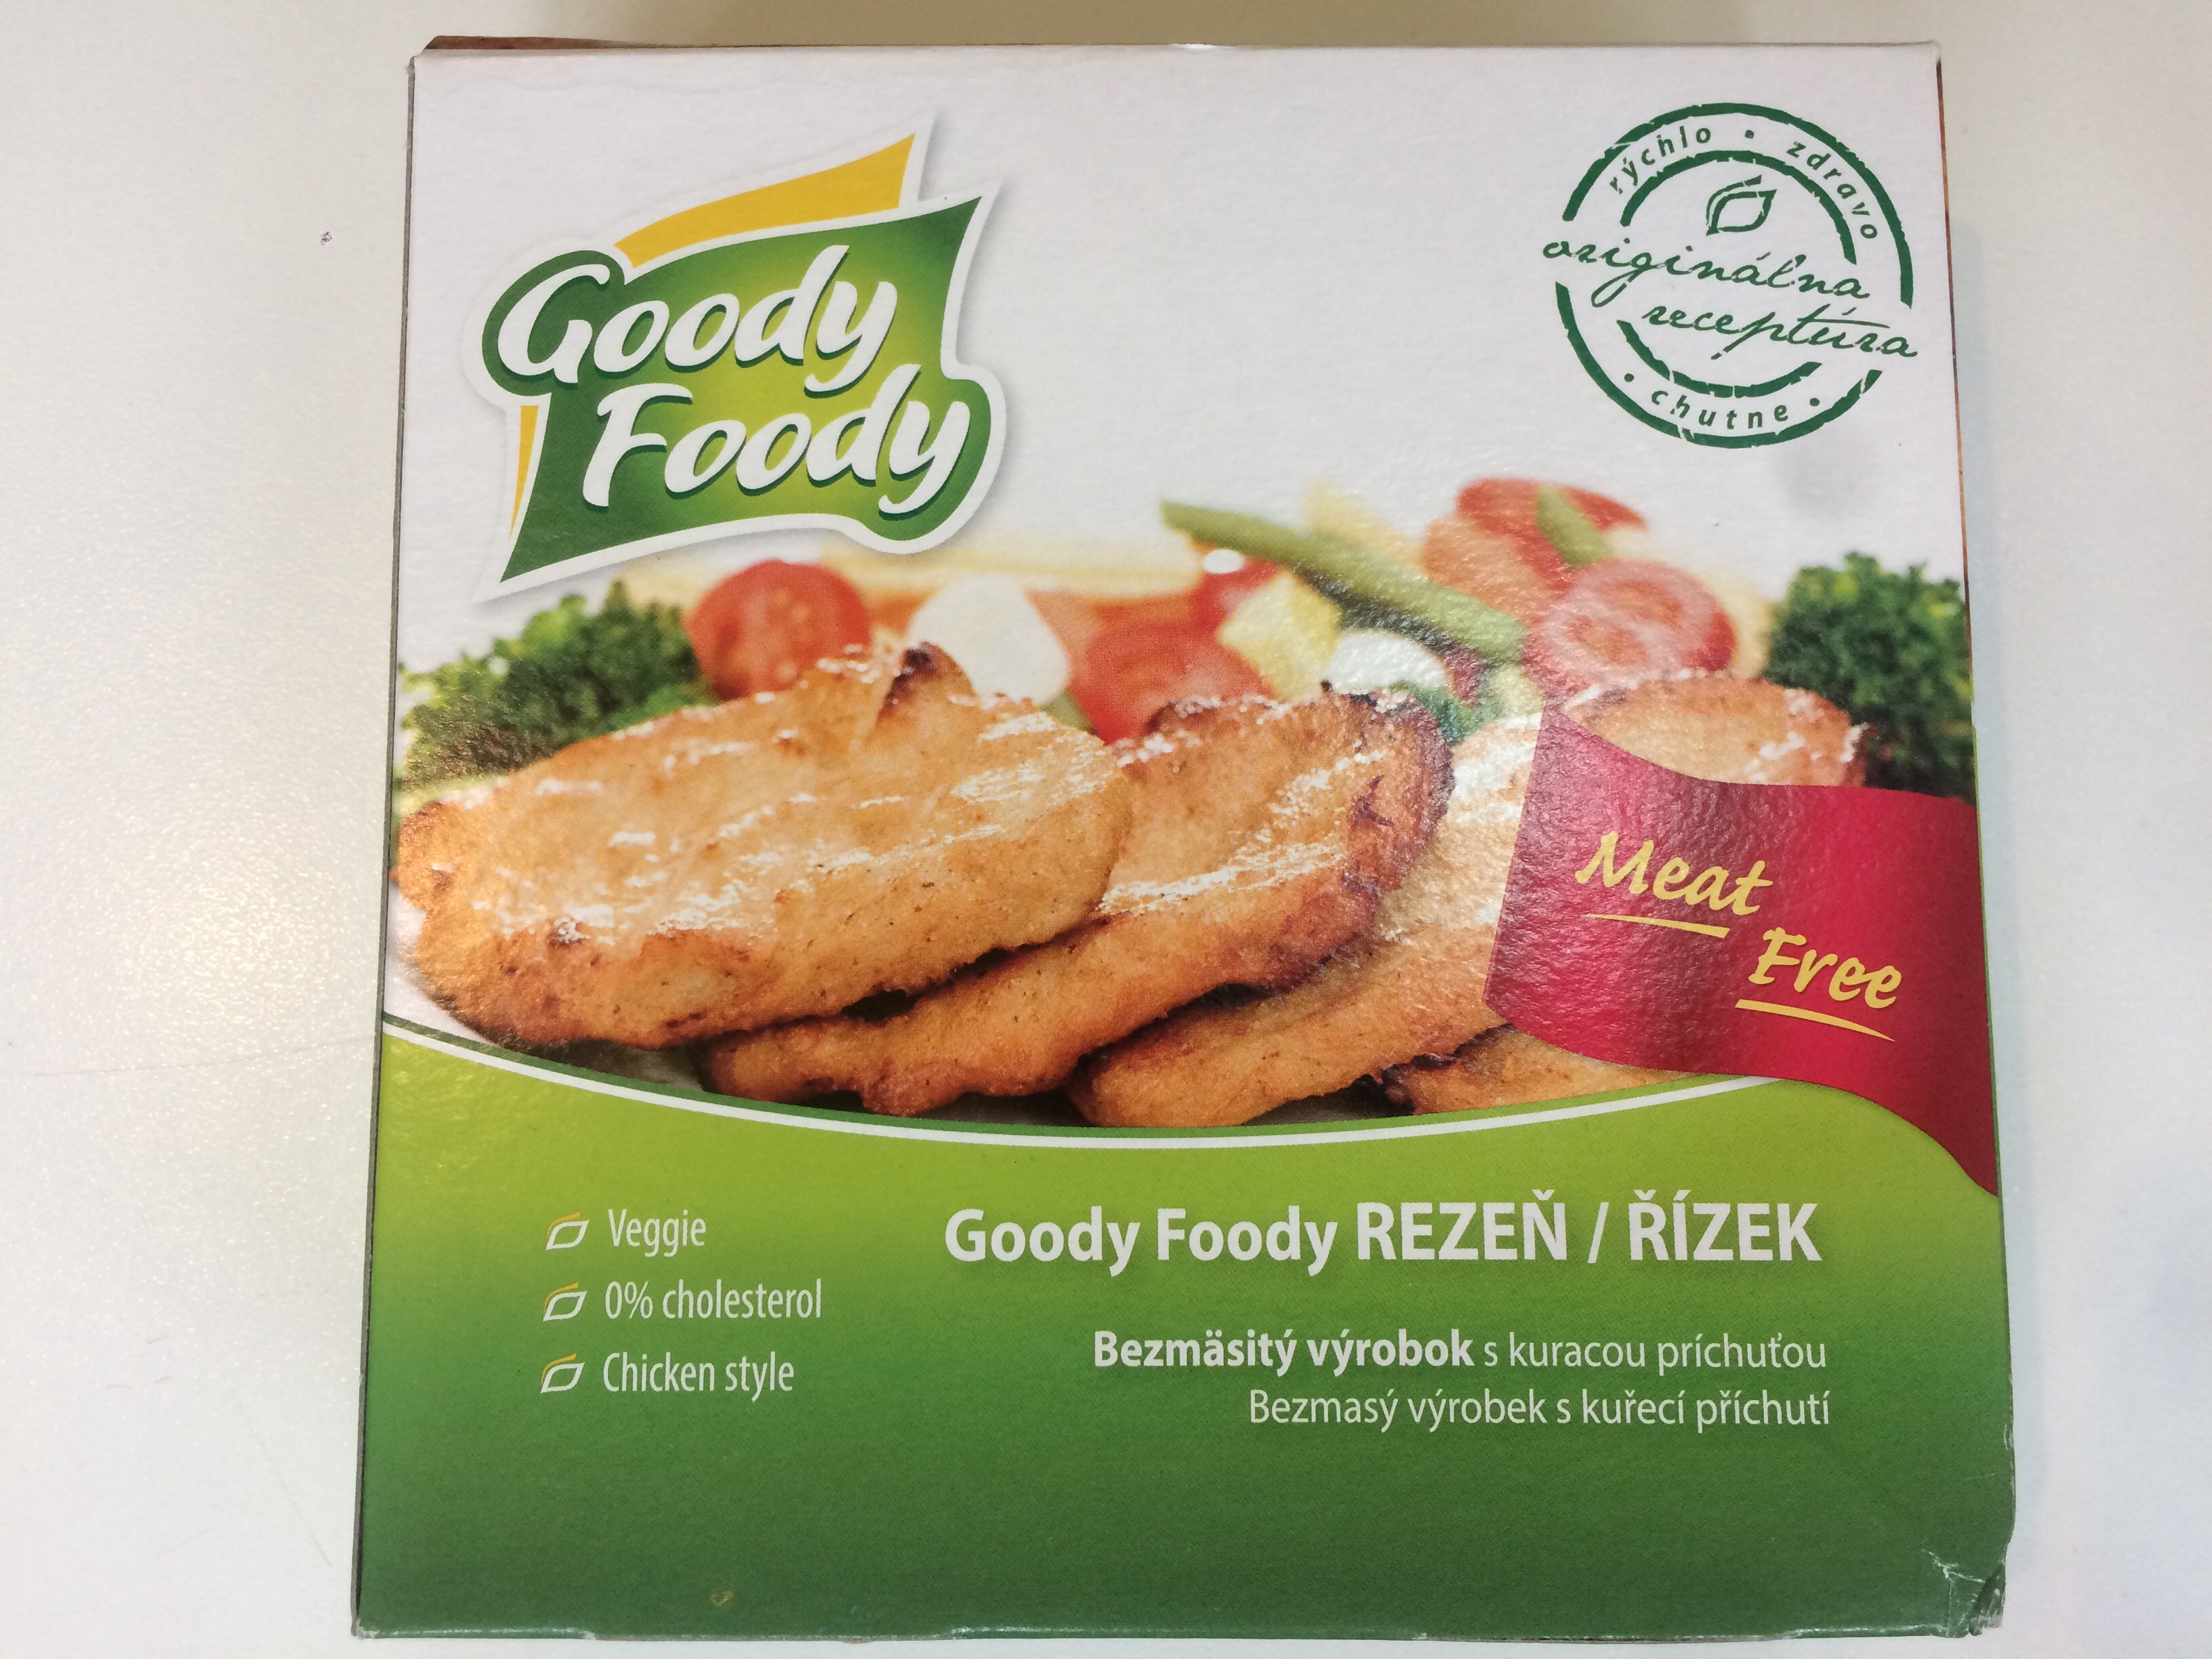 Goody Foody rezeň